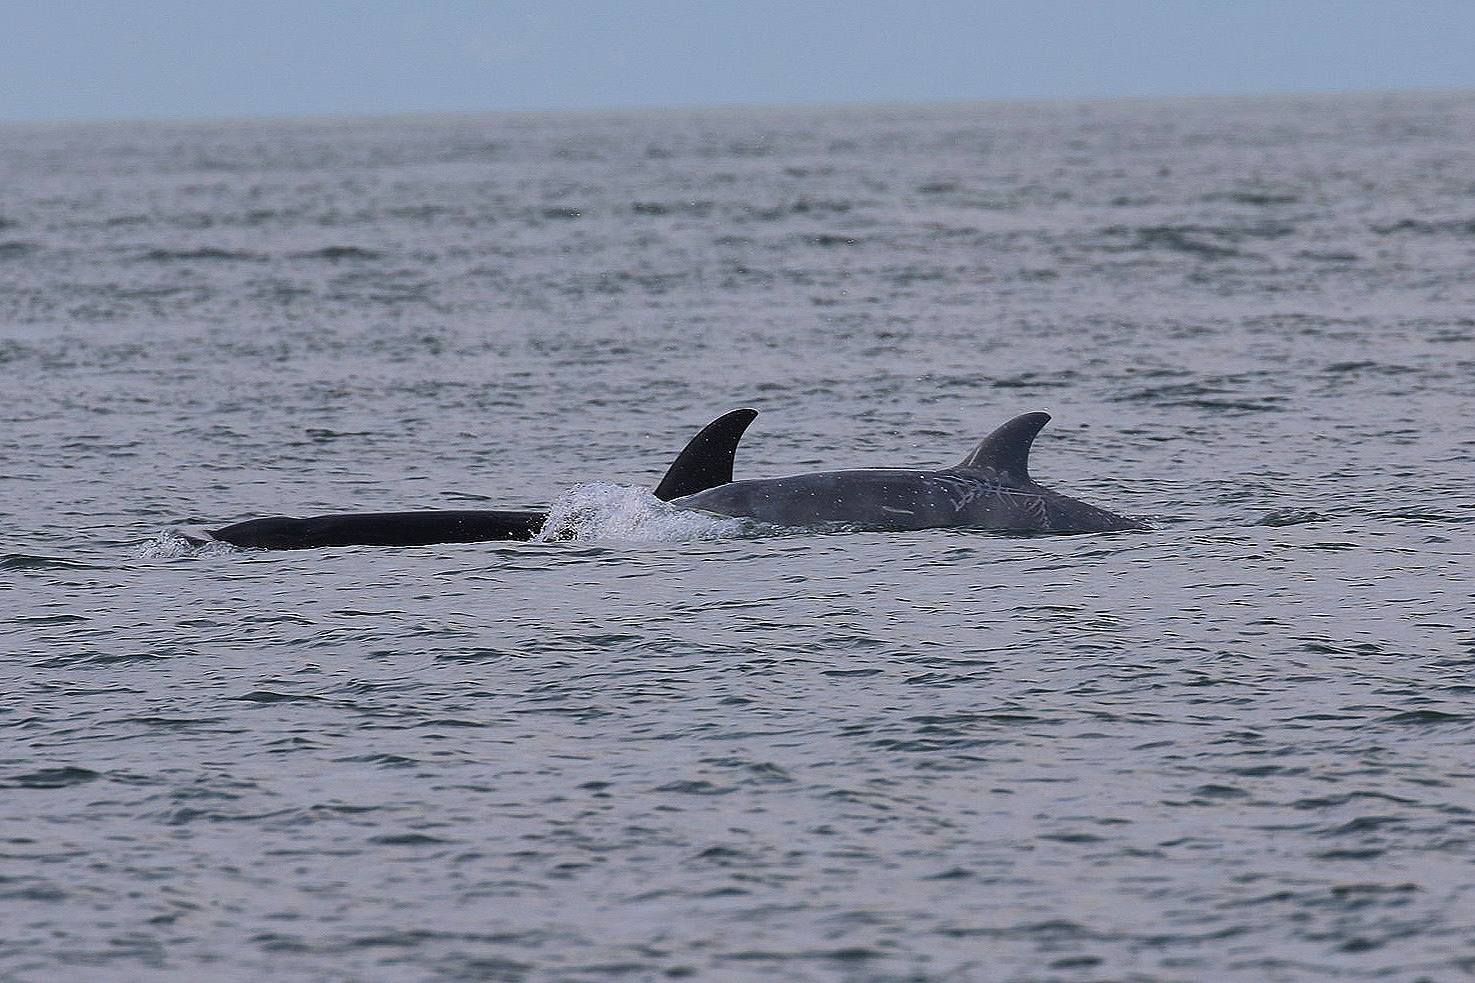 """T46B1B - """"Tl'uk"""" the white orca (front). It appears that he may be darkening in colour now. Photo by Ryan Uslu (3:30)."""